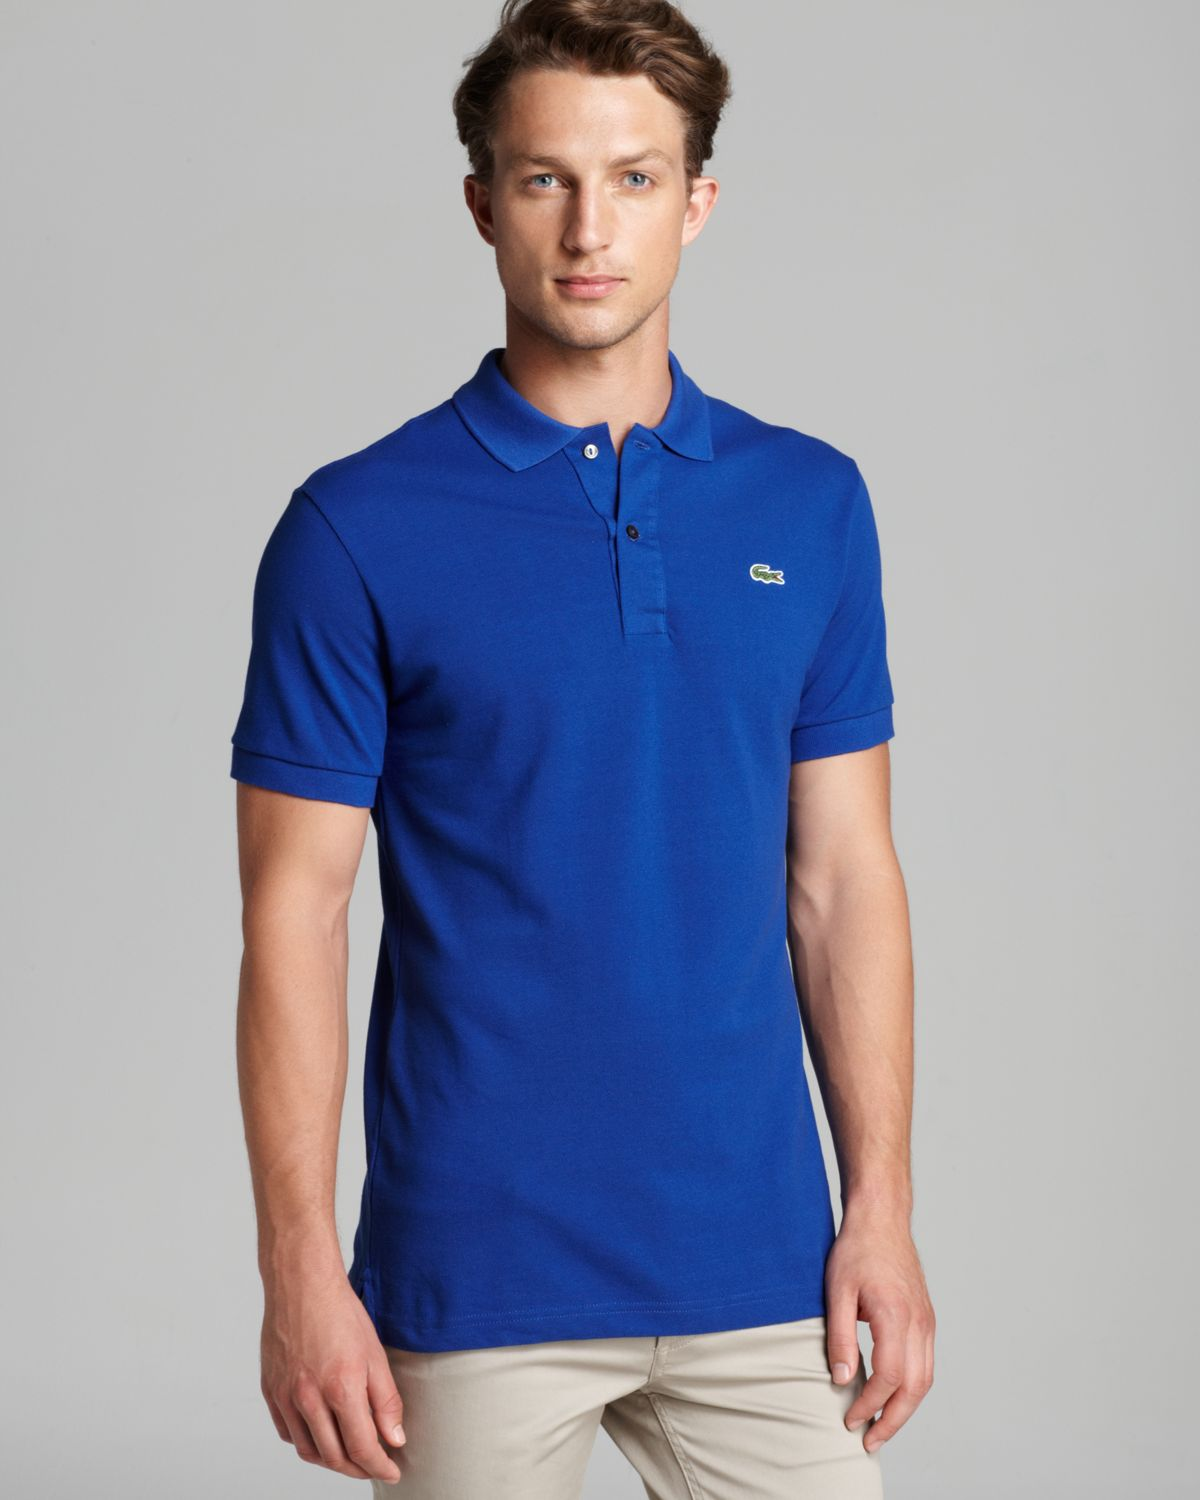 Lacoste men s classic fit pink short sleeve polo shirt 6 for Short sleeve lacoste shirt